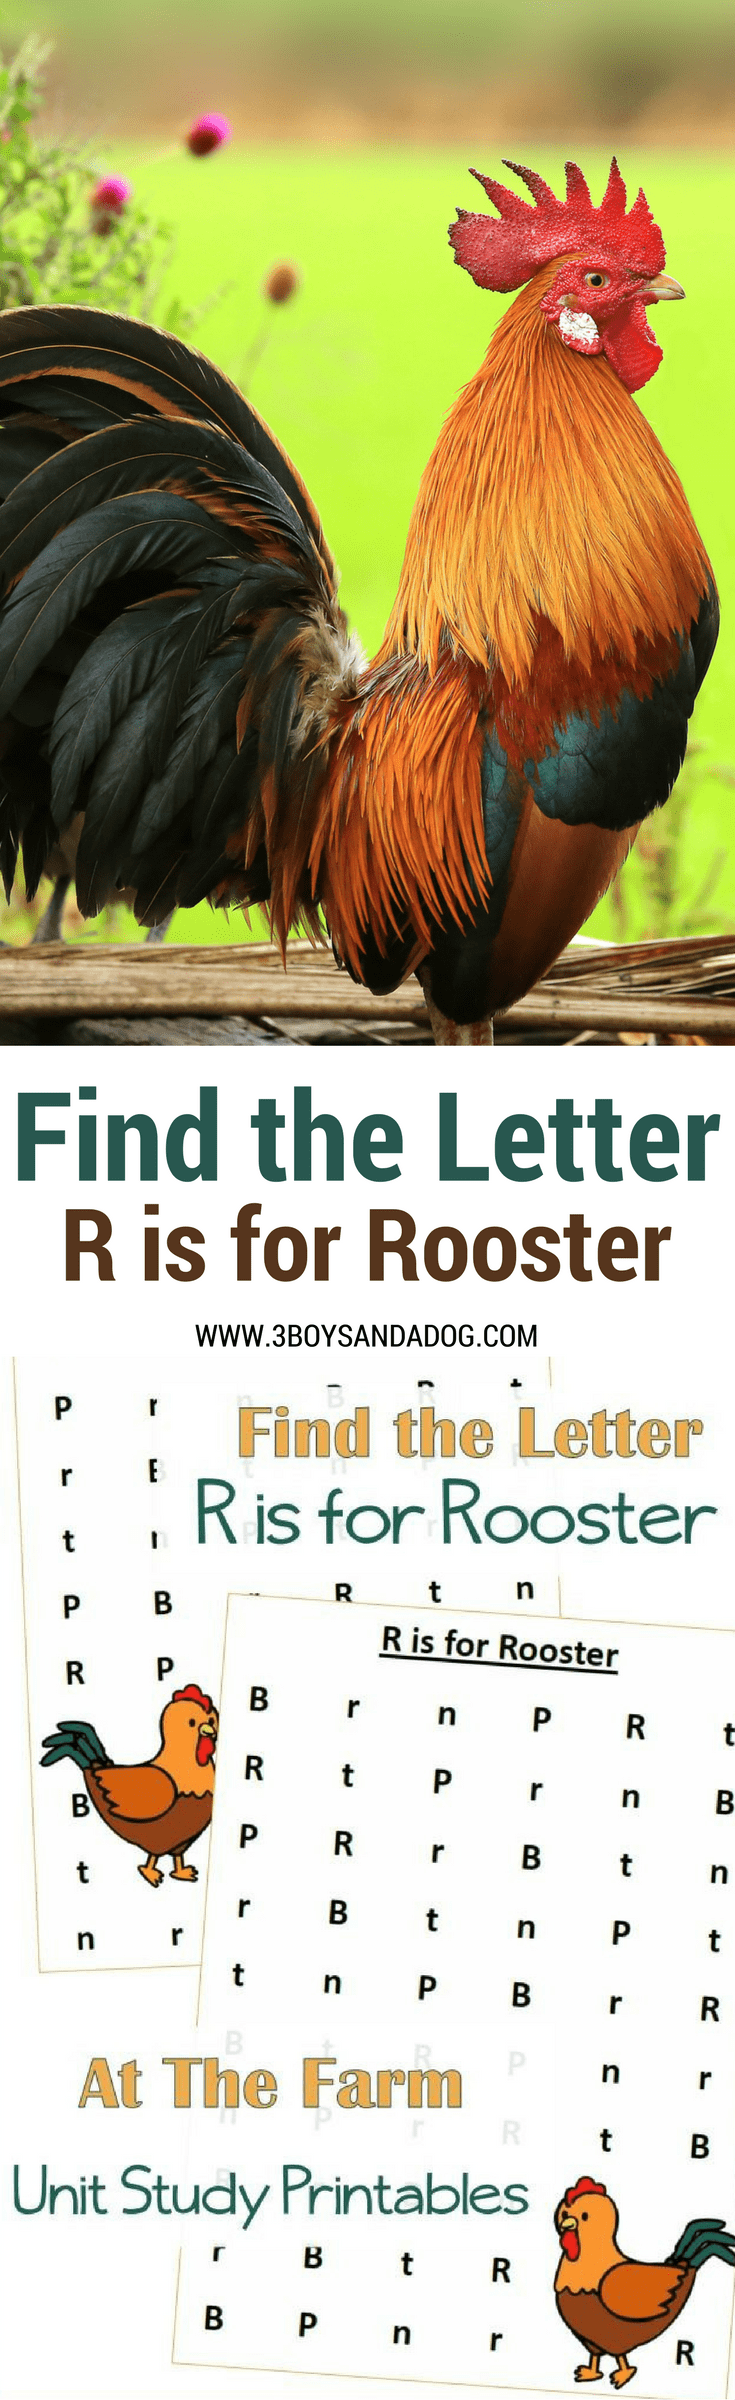 These Find the Letter Printables: R is for Rooster will help your preschool and early-elementary aged children work on recognizing the letter H among many other letters of the alphabet. Great for fine motor and alphabet recognition.